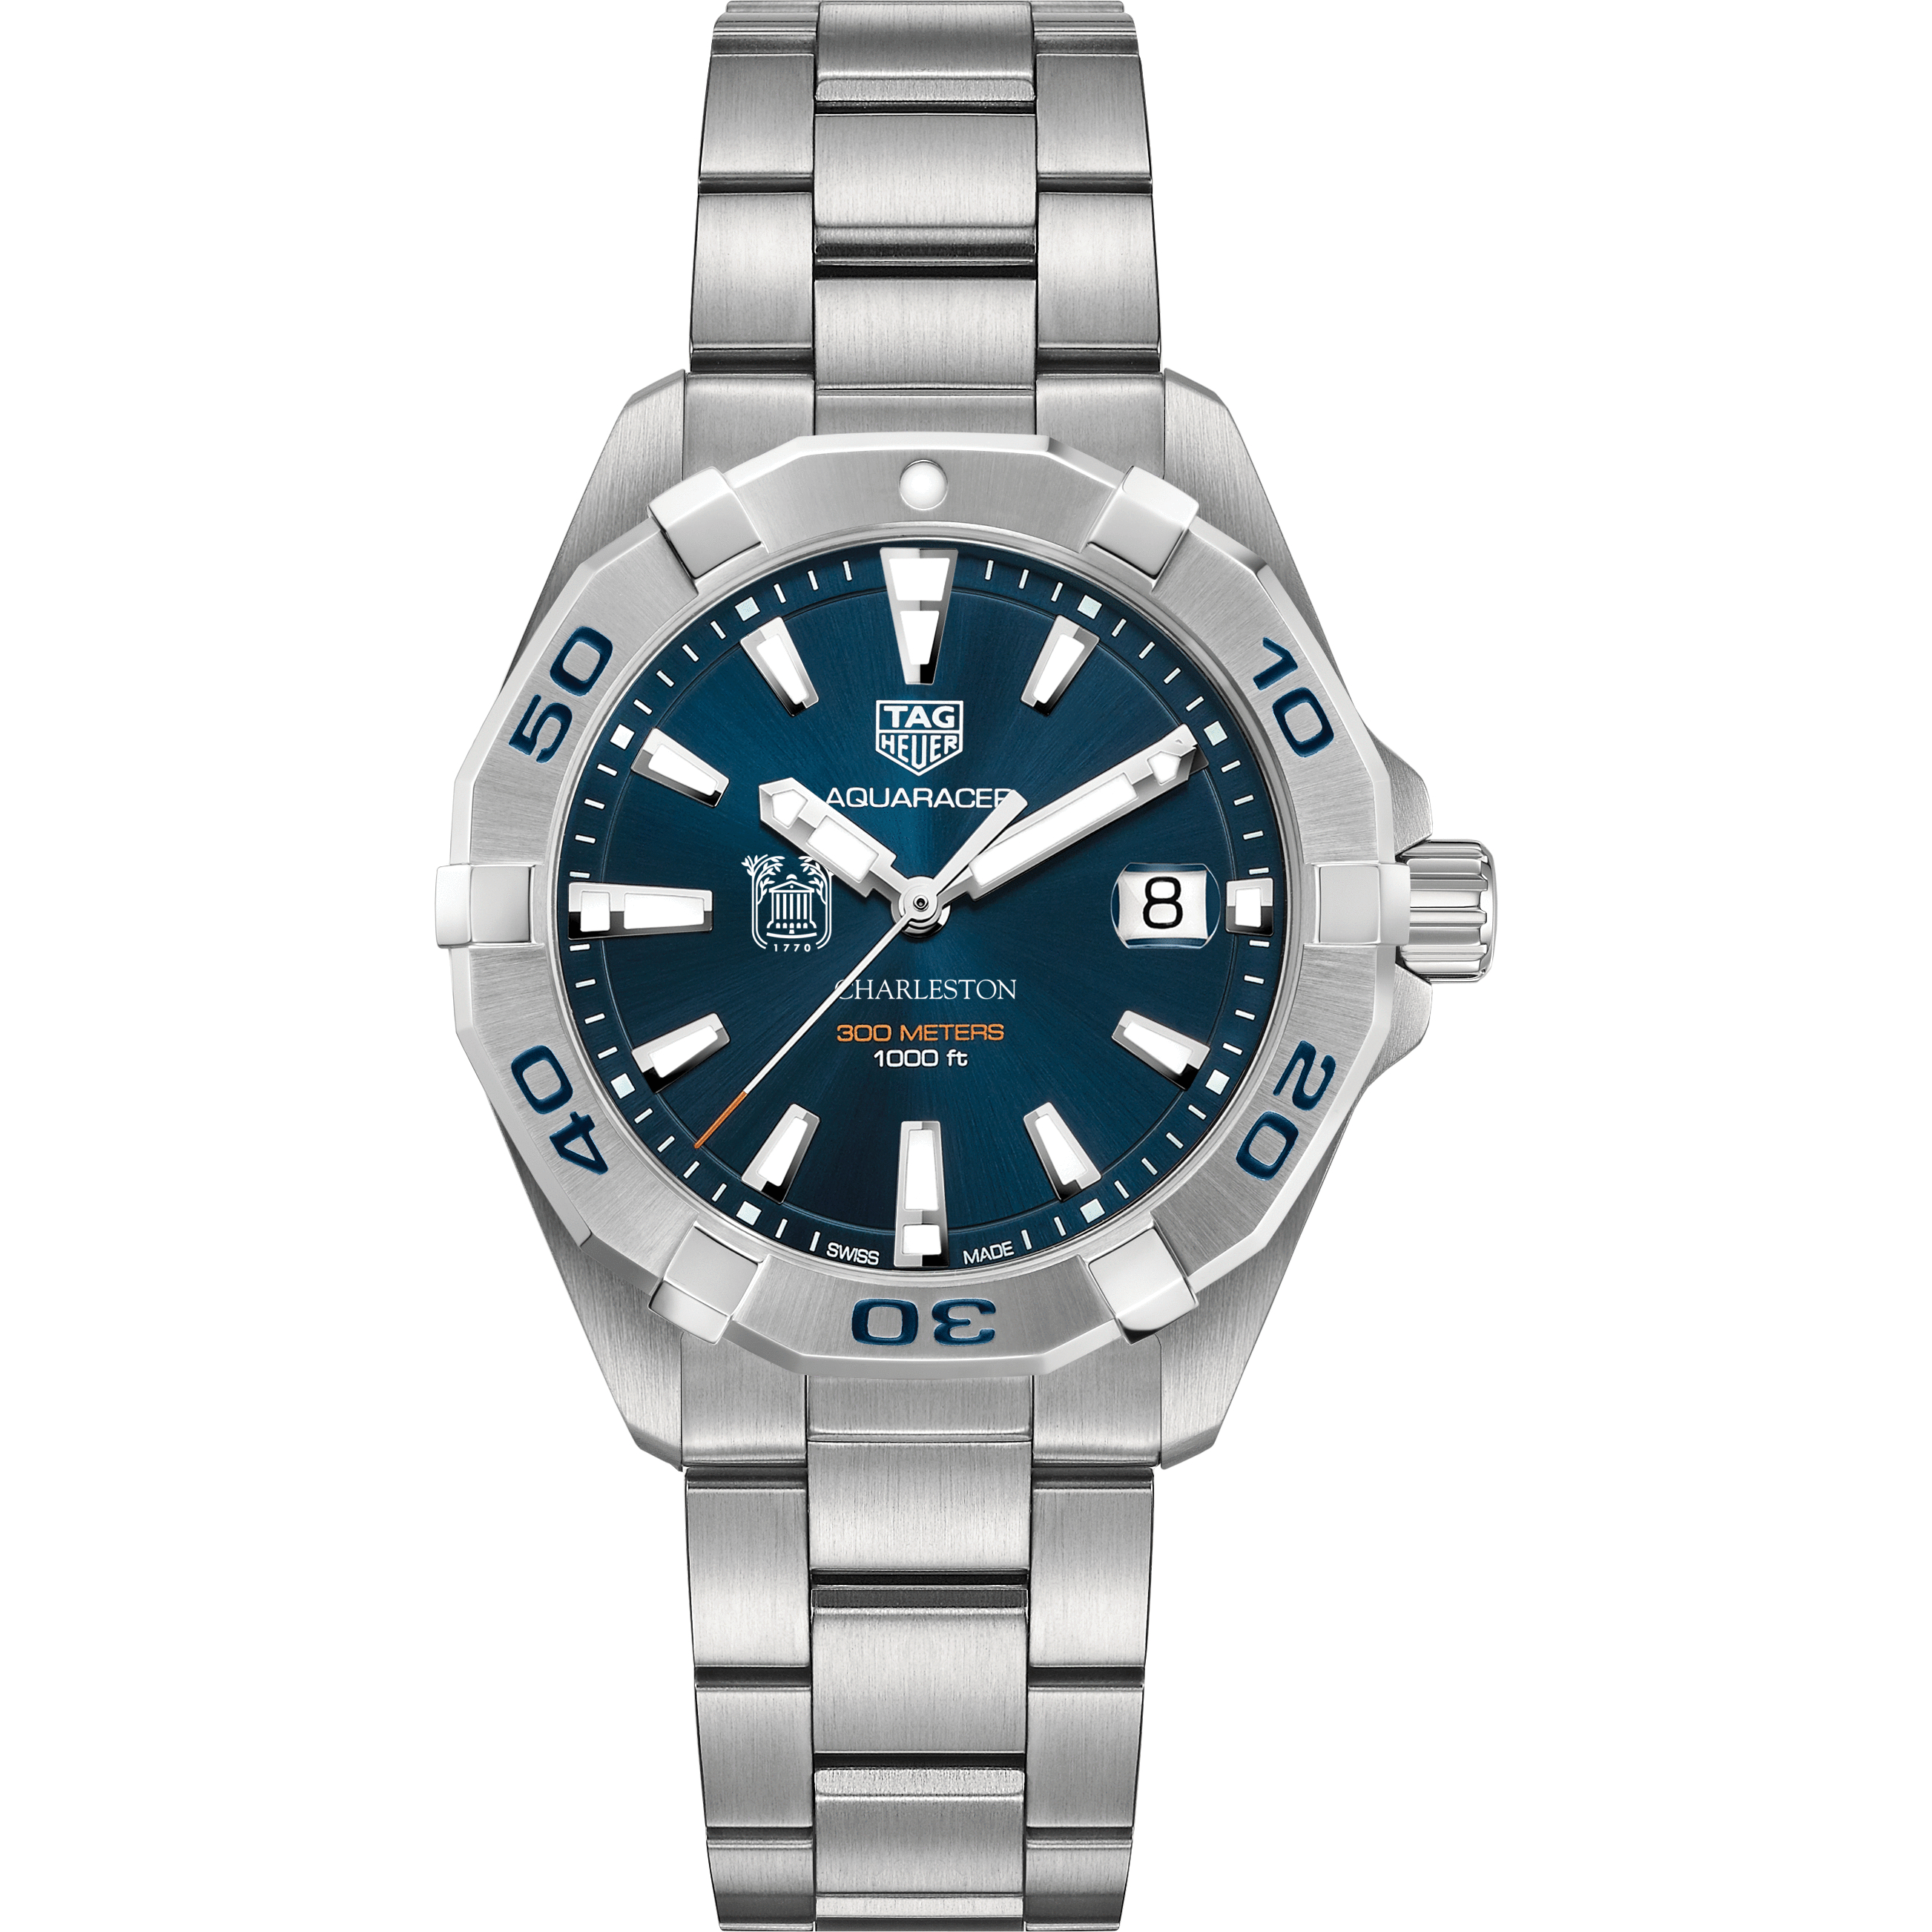 College of Charleston Men's TAG Heuer Steel Aquaracer with Blue Dial - Image 2